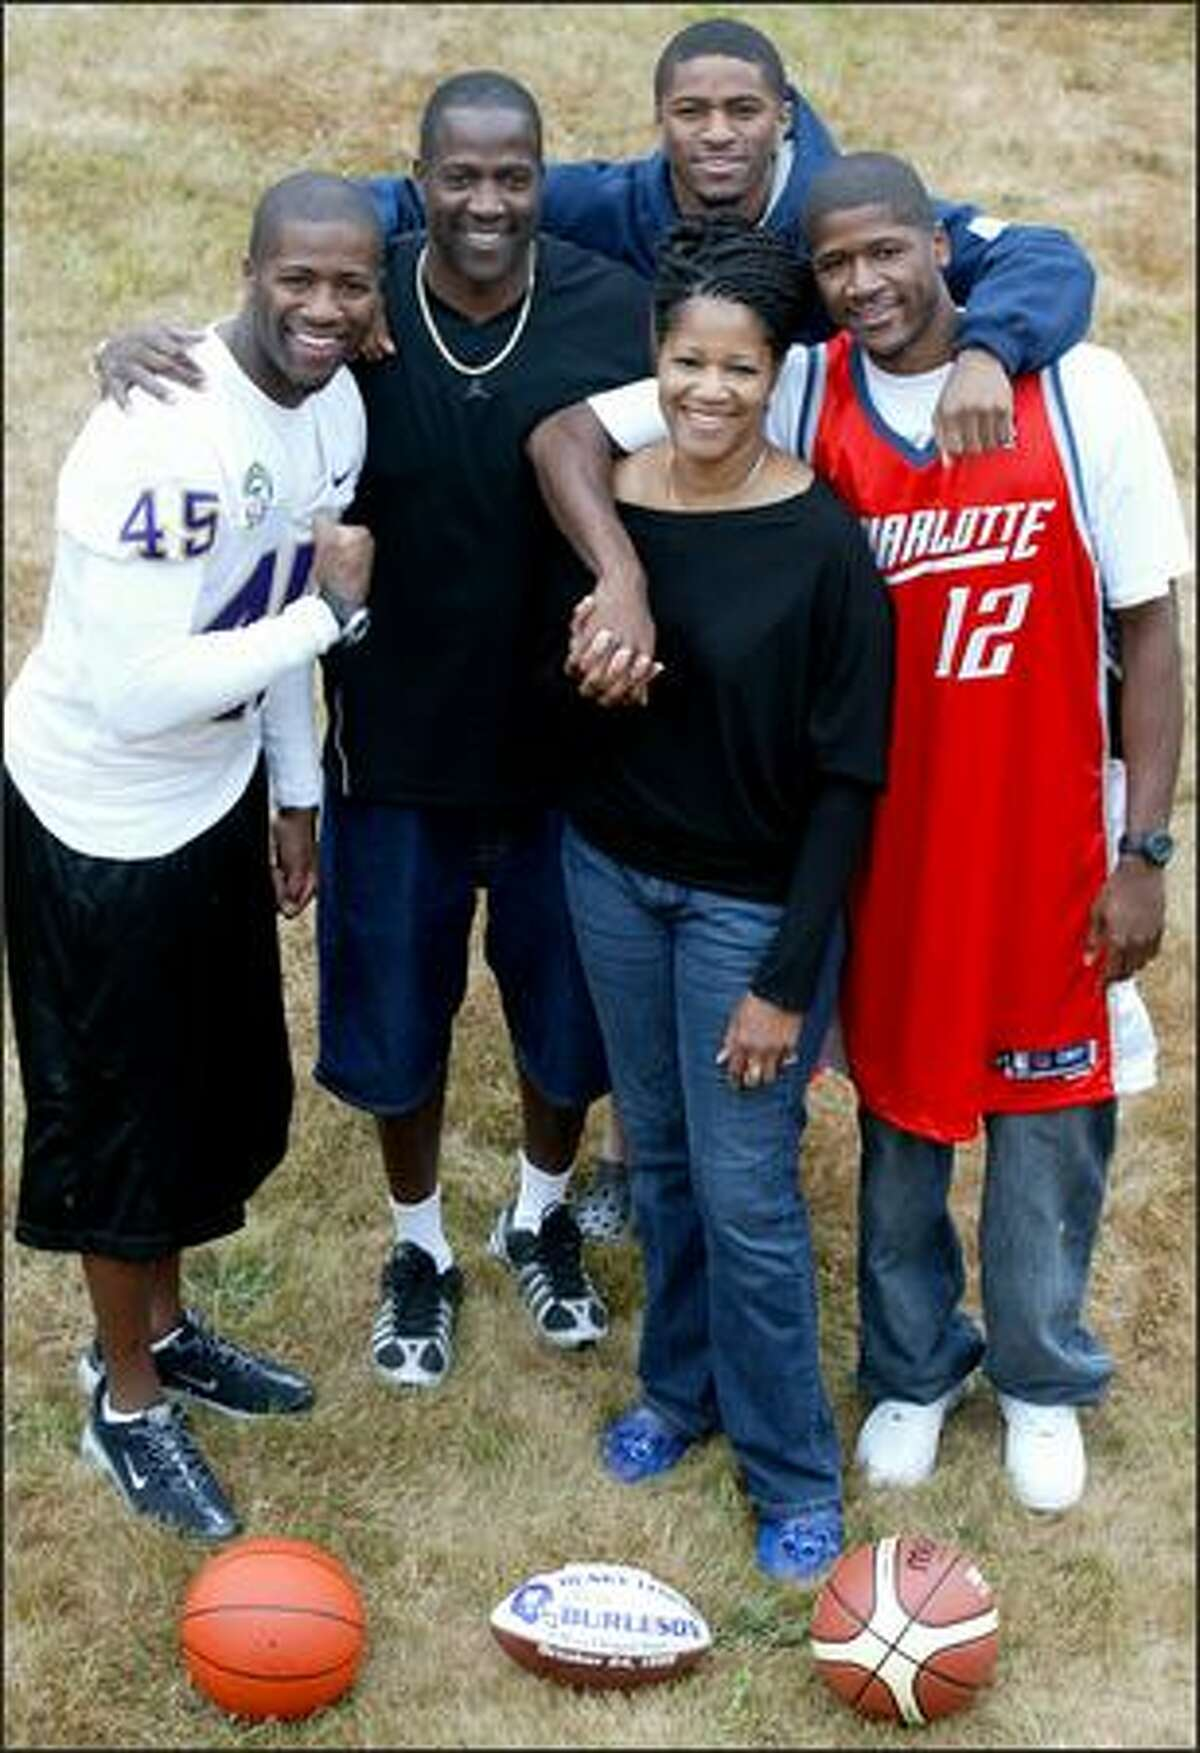 Valerie Burleson and husband Al, second from left, huddle with three of their athletic sons in the backyard of their Renton home. Their four sons include Al Jr., left, Lyndale, rear, Kevin, right, and Nate, not pictured.